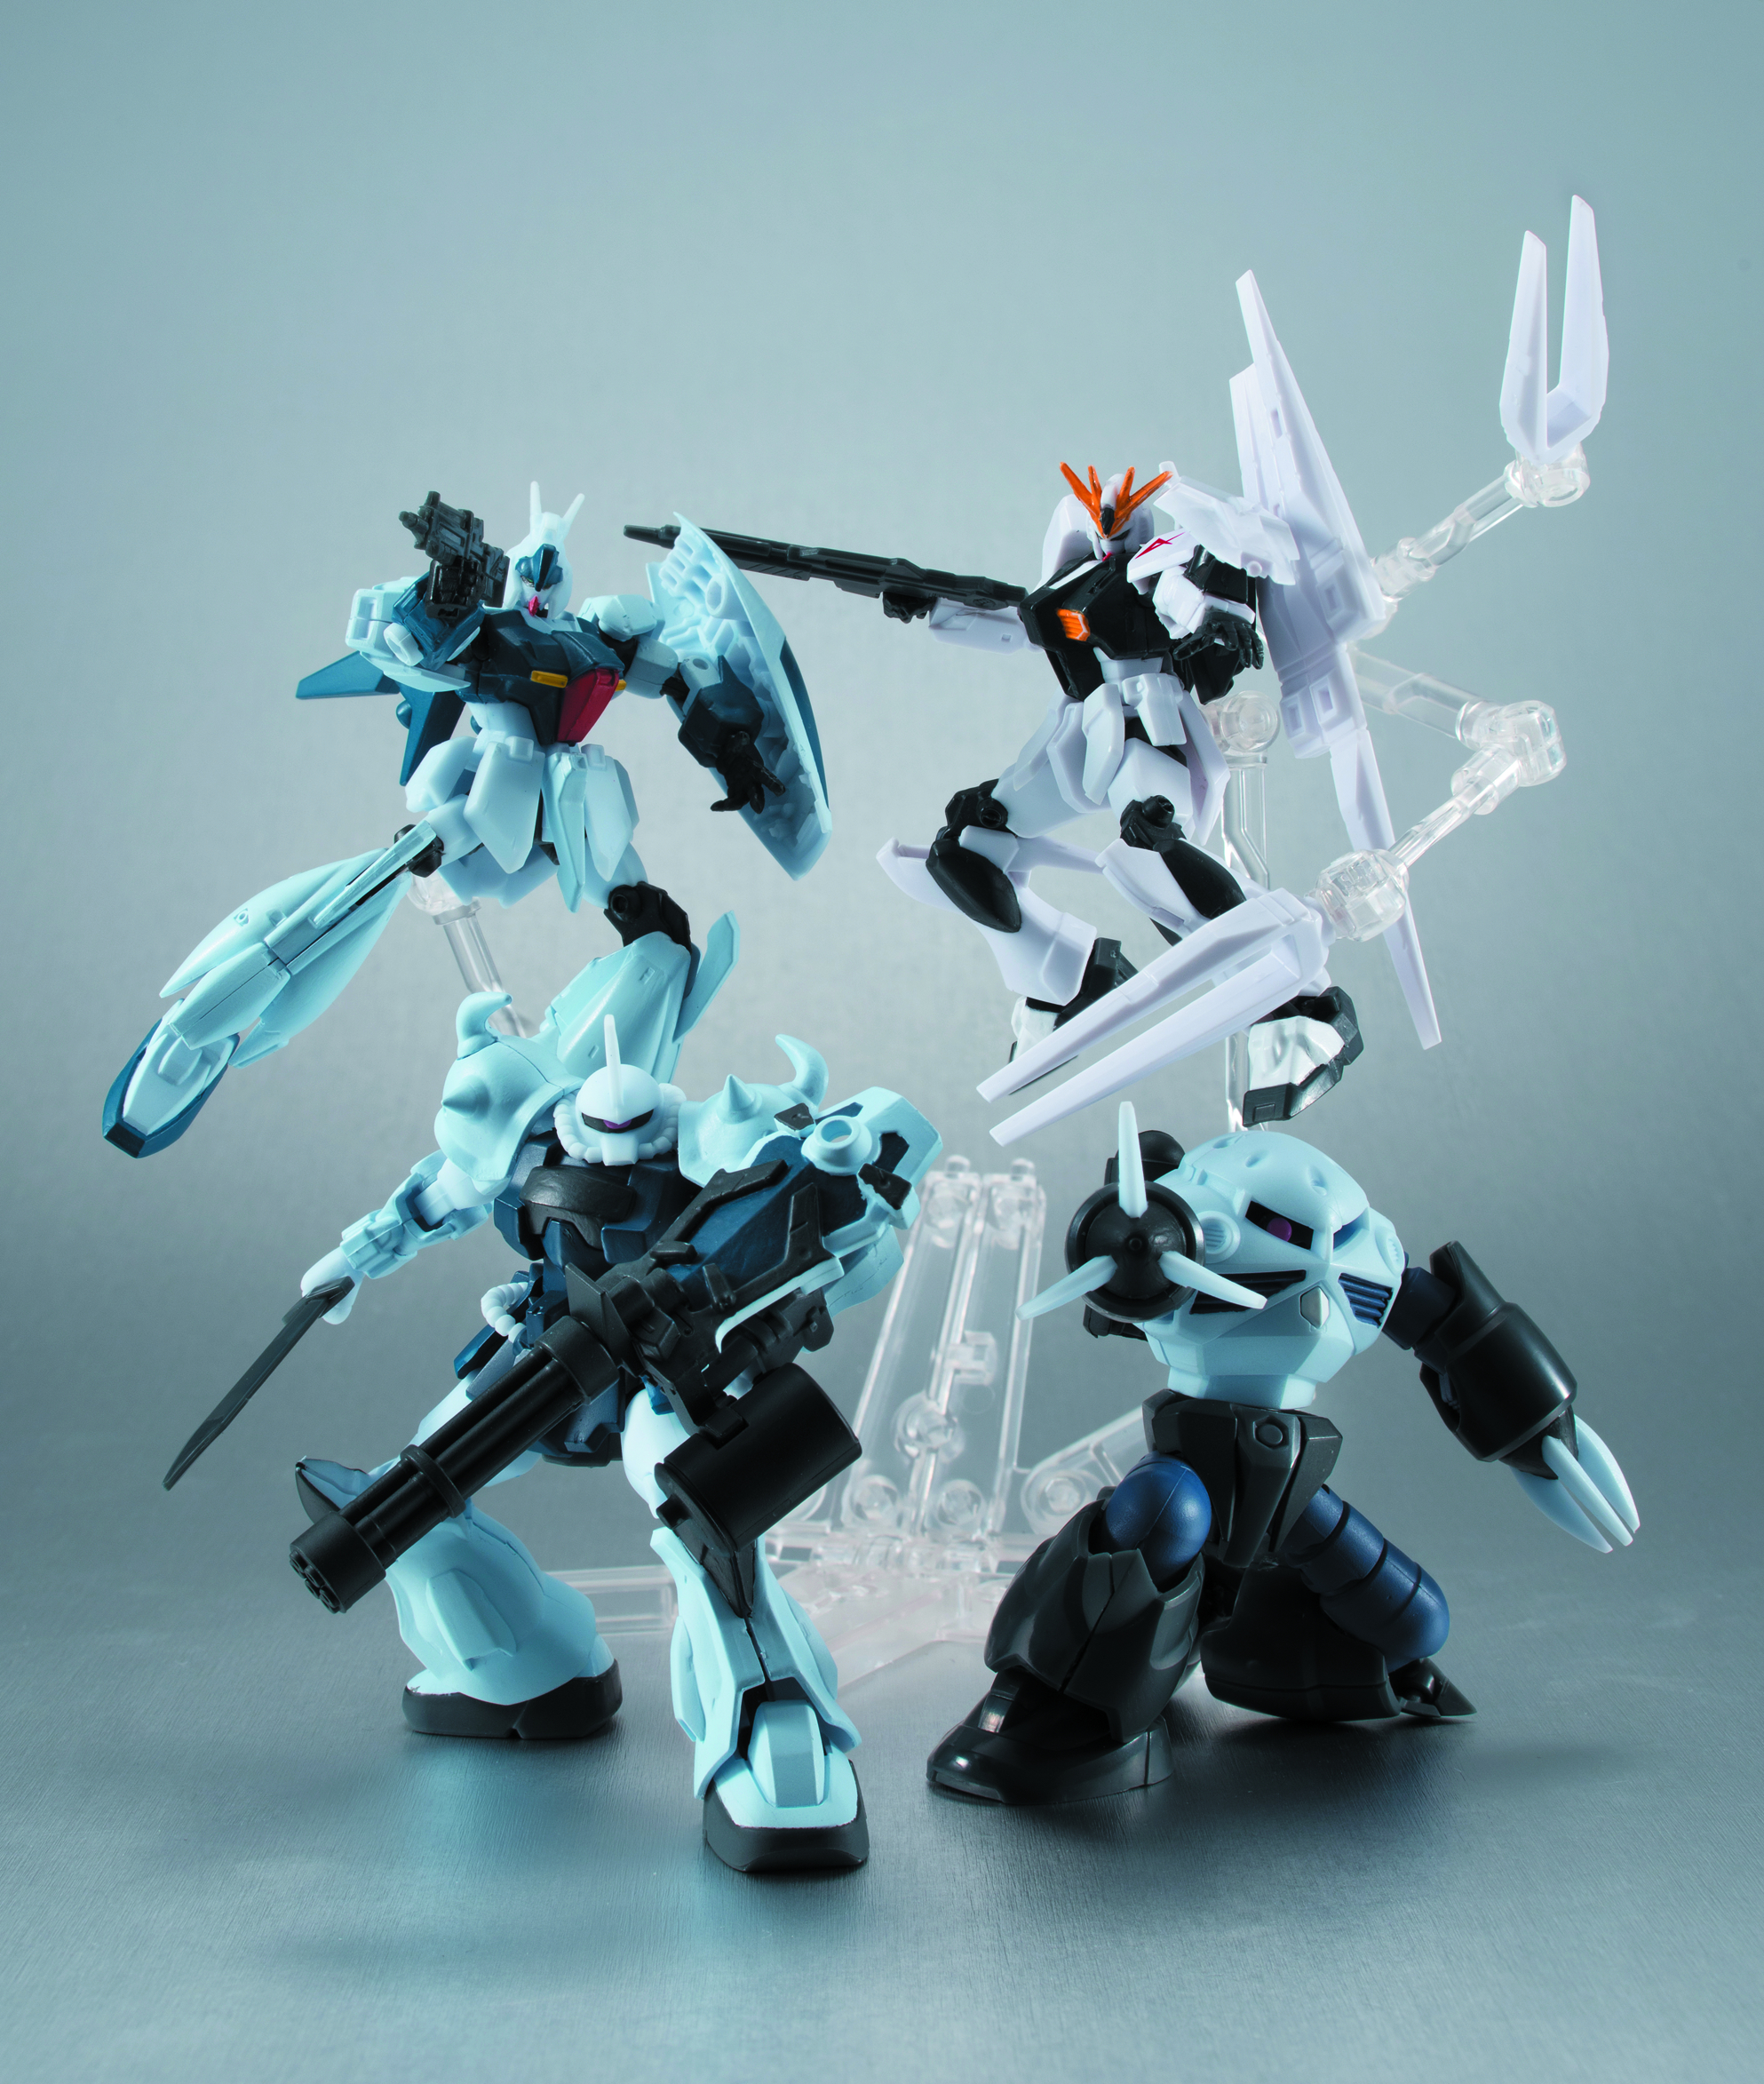 MSG GUNDAM ASSAULT KINGDOM 4 TRAD FIG 10PC ASST